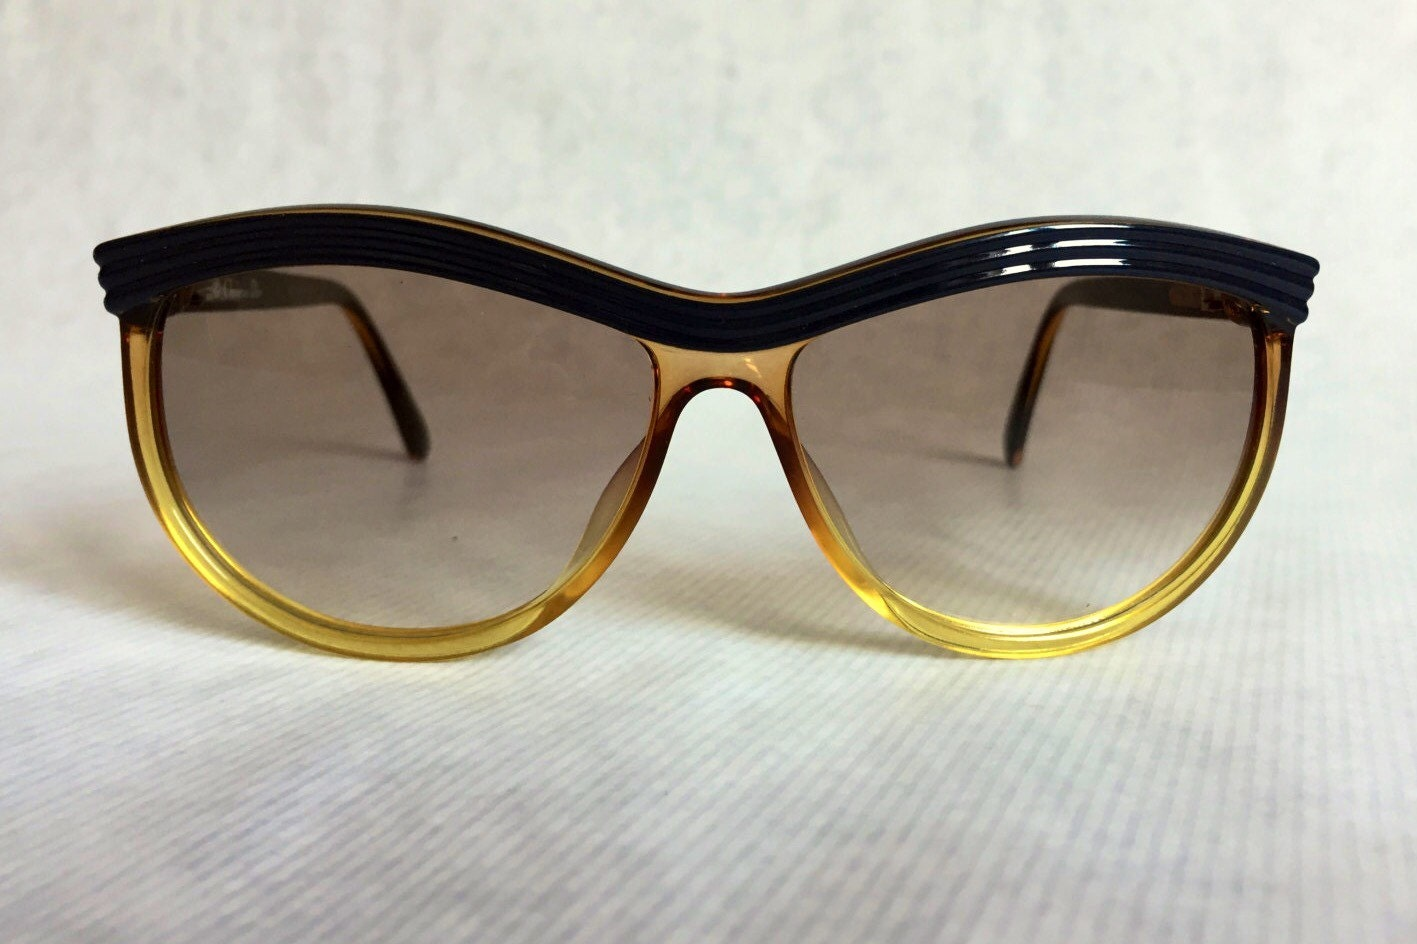 49968fe68e Christian Dior 2350 Vintage Sunglasses NOS - Made in Austria in the 1980s.  gallery photo ...